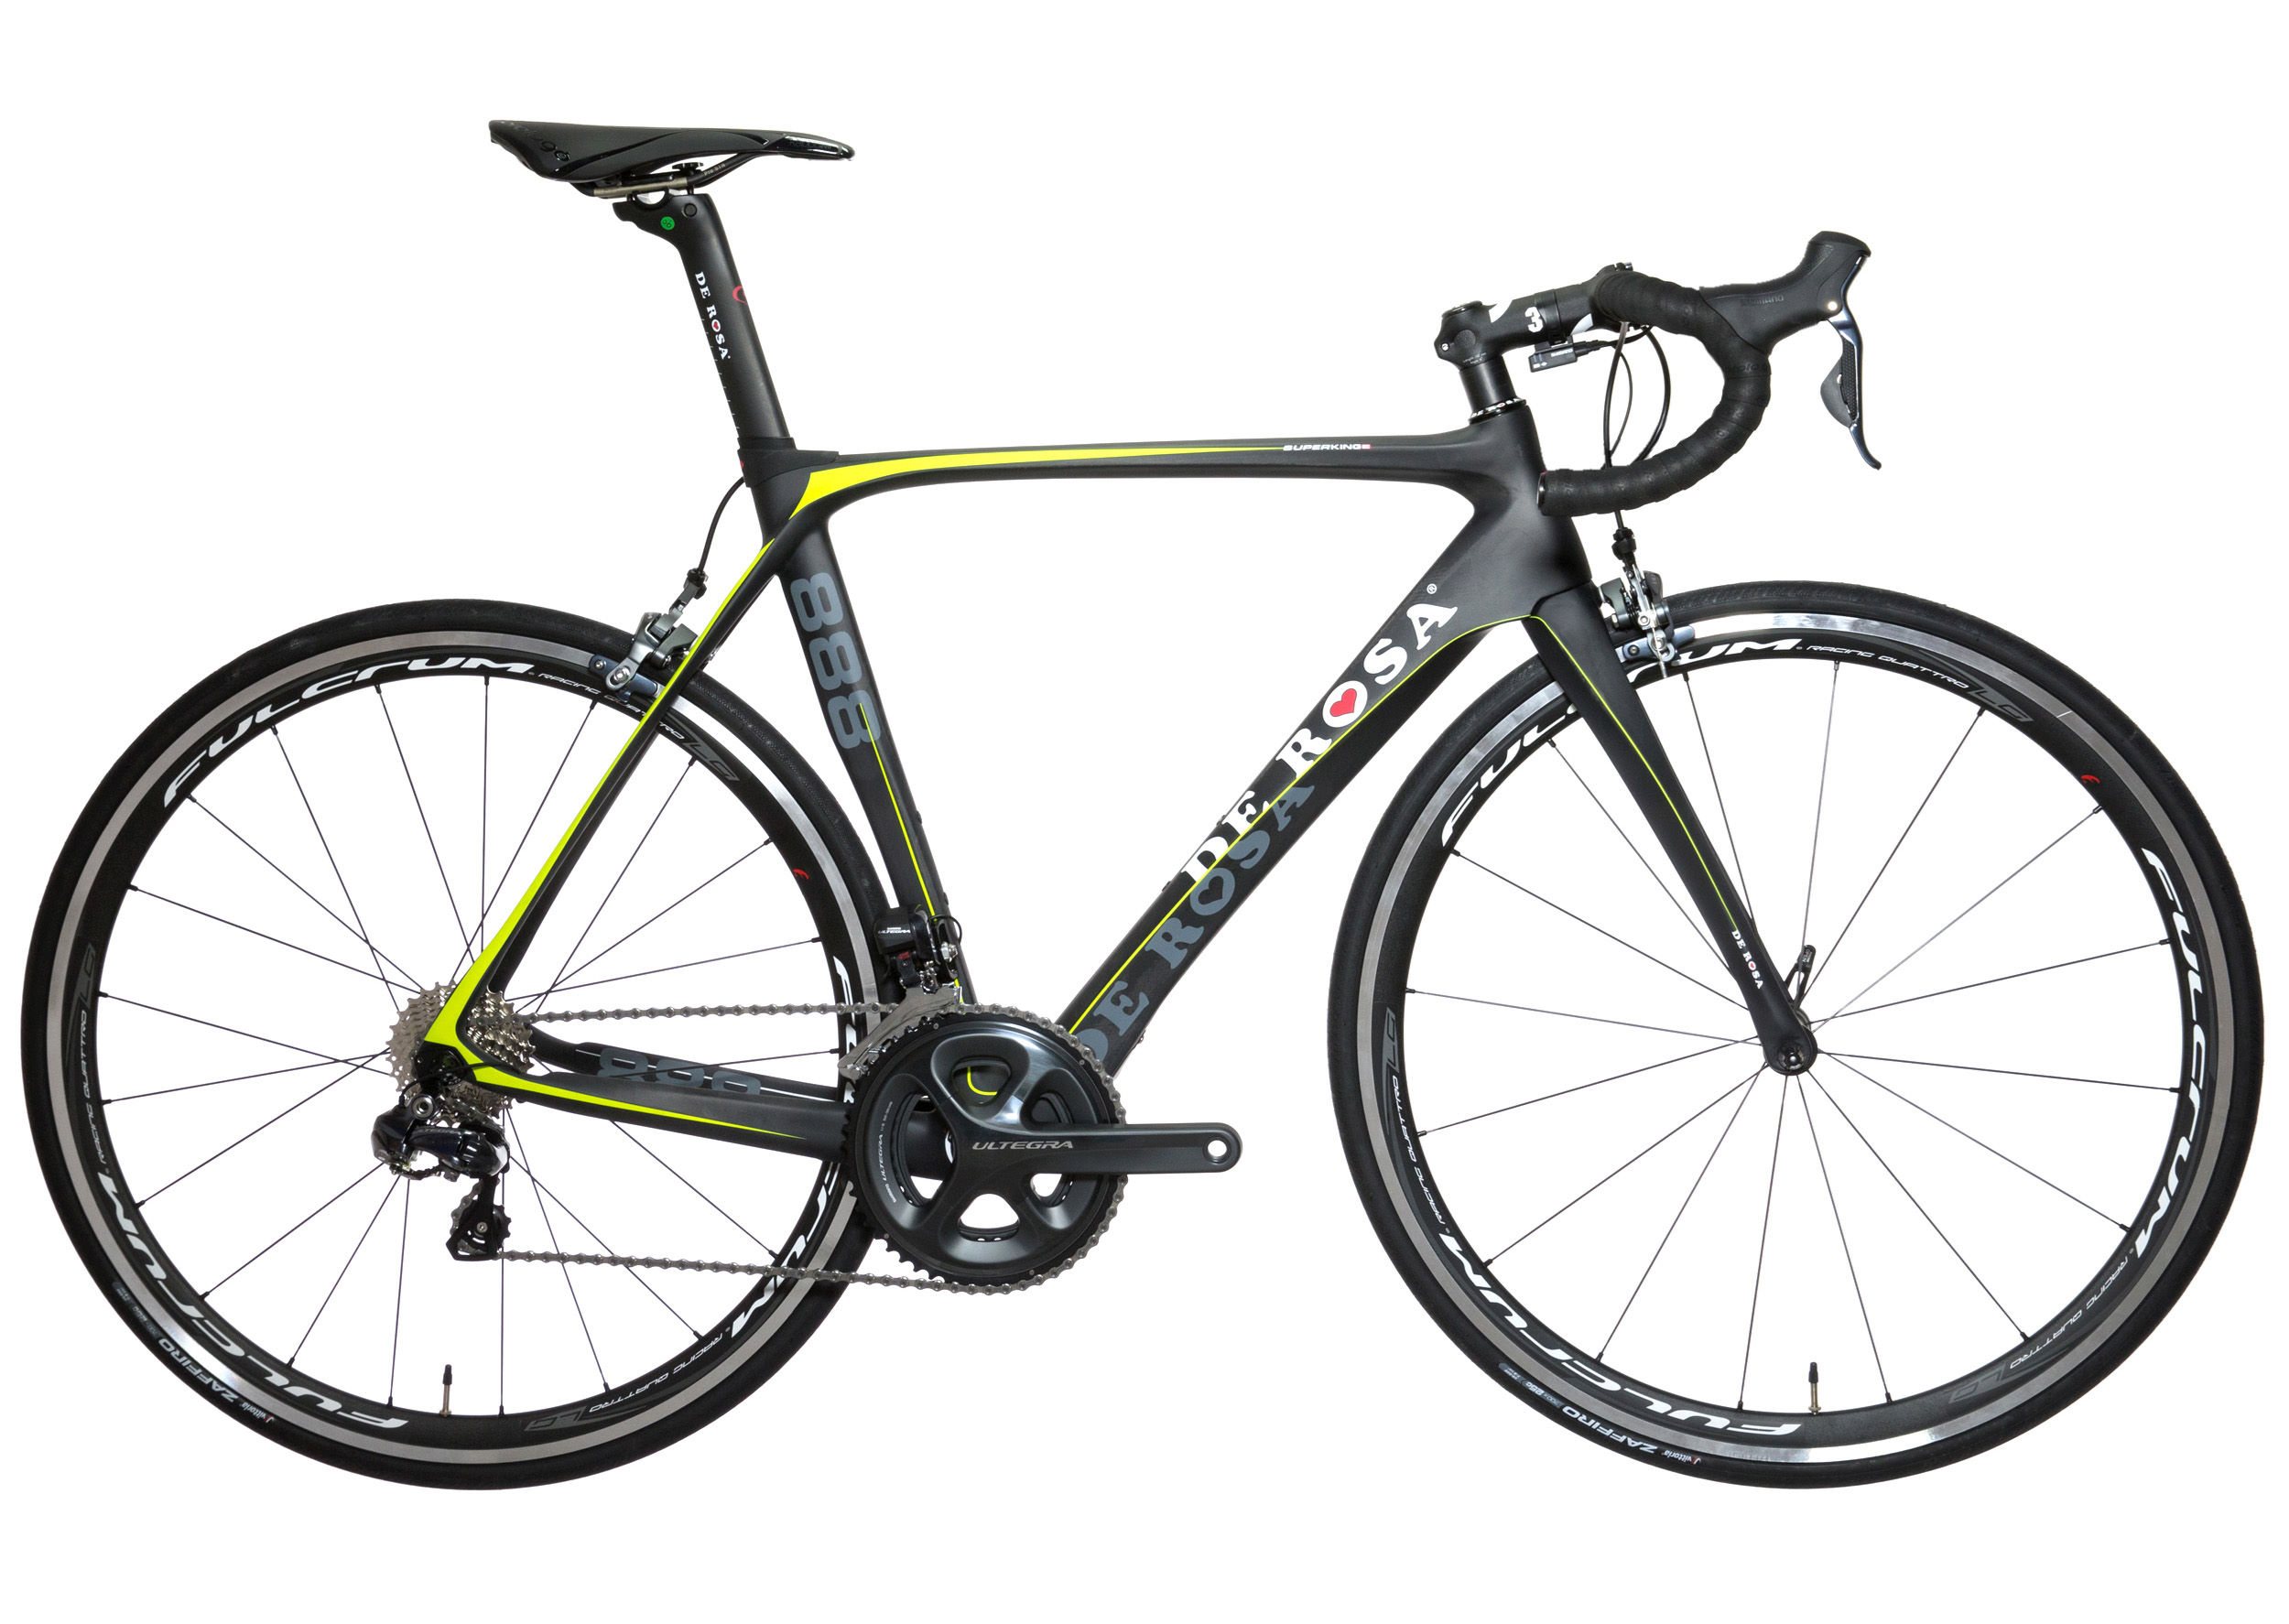 De Rosa SuperKing 888 105 2014 Road Bike Road Bikes Black Yellow 2014 DERSUPERK580RQBLKY46?w=2000&h=2000&a=7 wiggle de rosa superking 888 (ultegra di2 2015) road bike  at gsmx.co